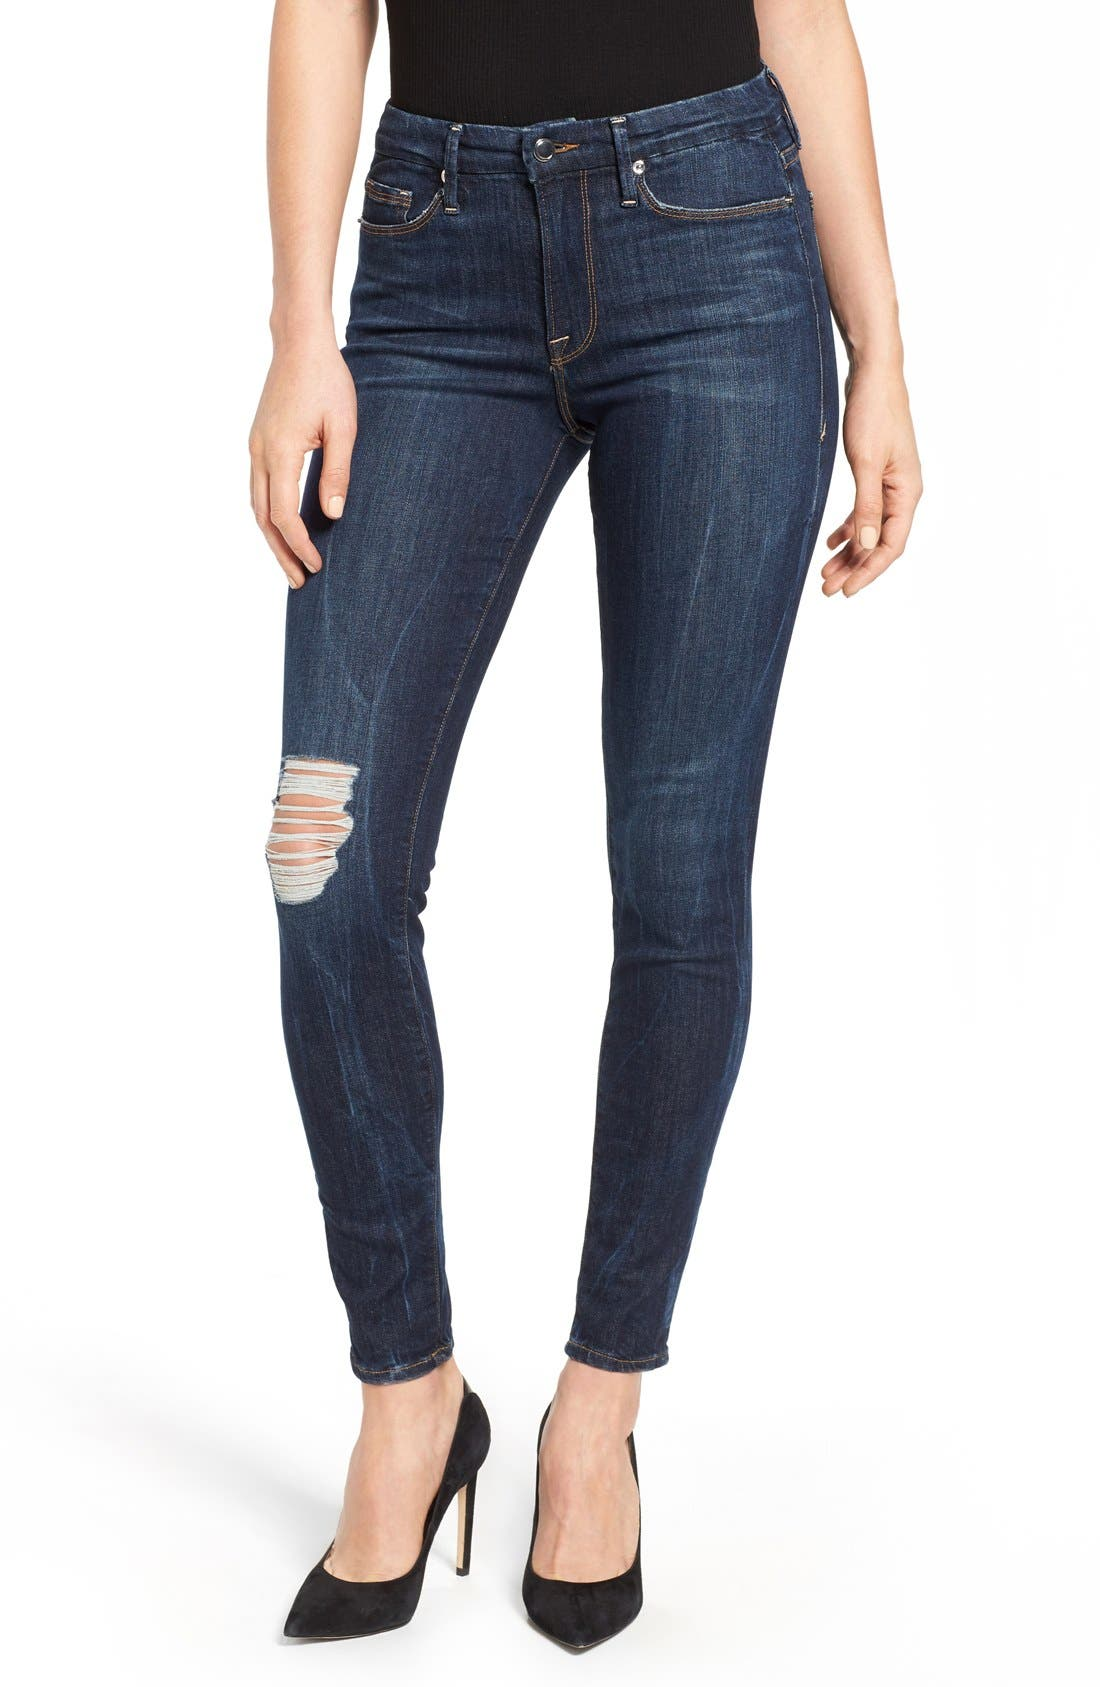 Alternate Image 1 Selected - Good American Good Legs Ripped Skinny Jeans (Blue 002)